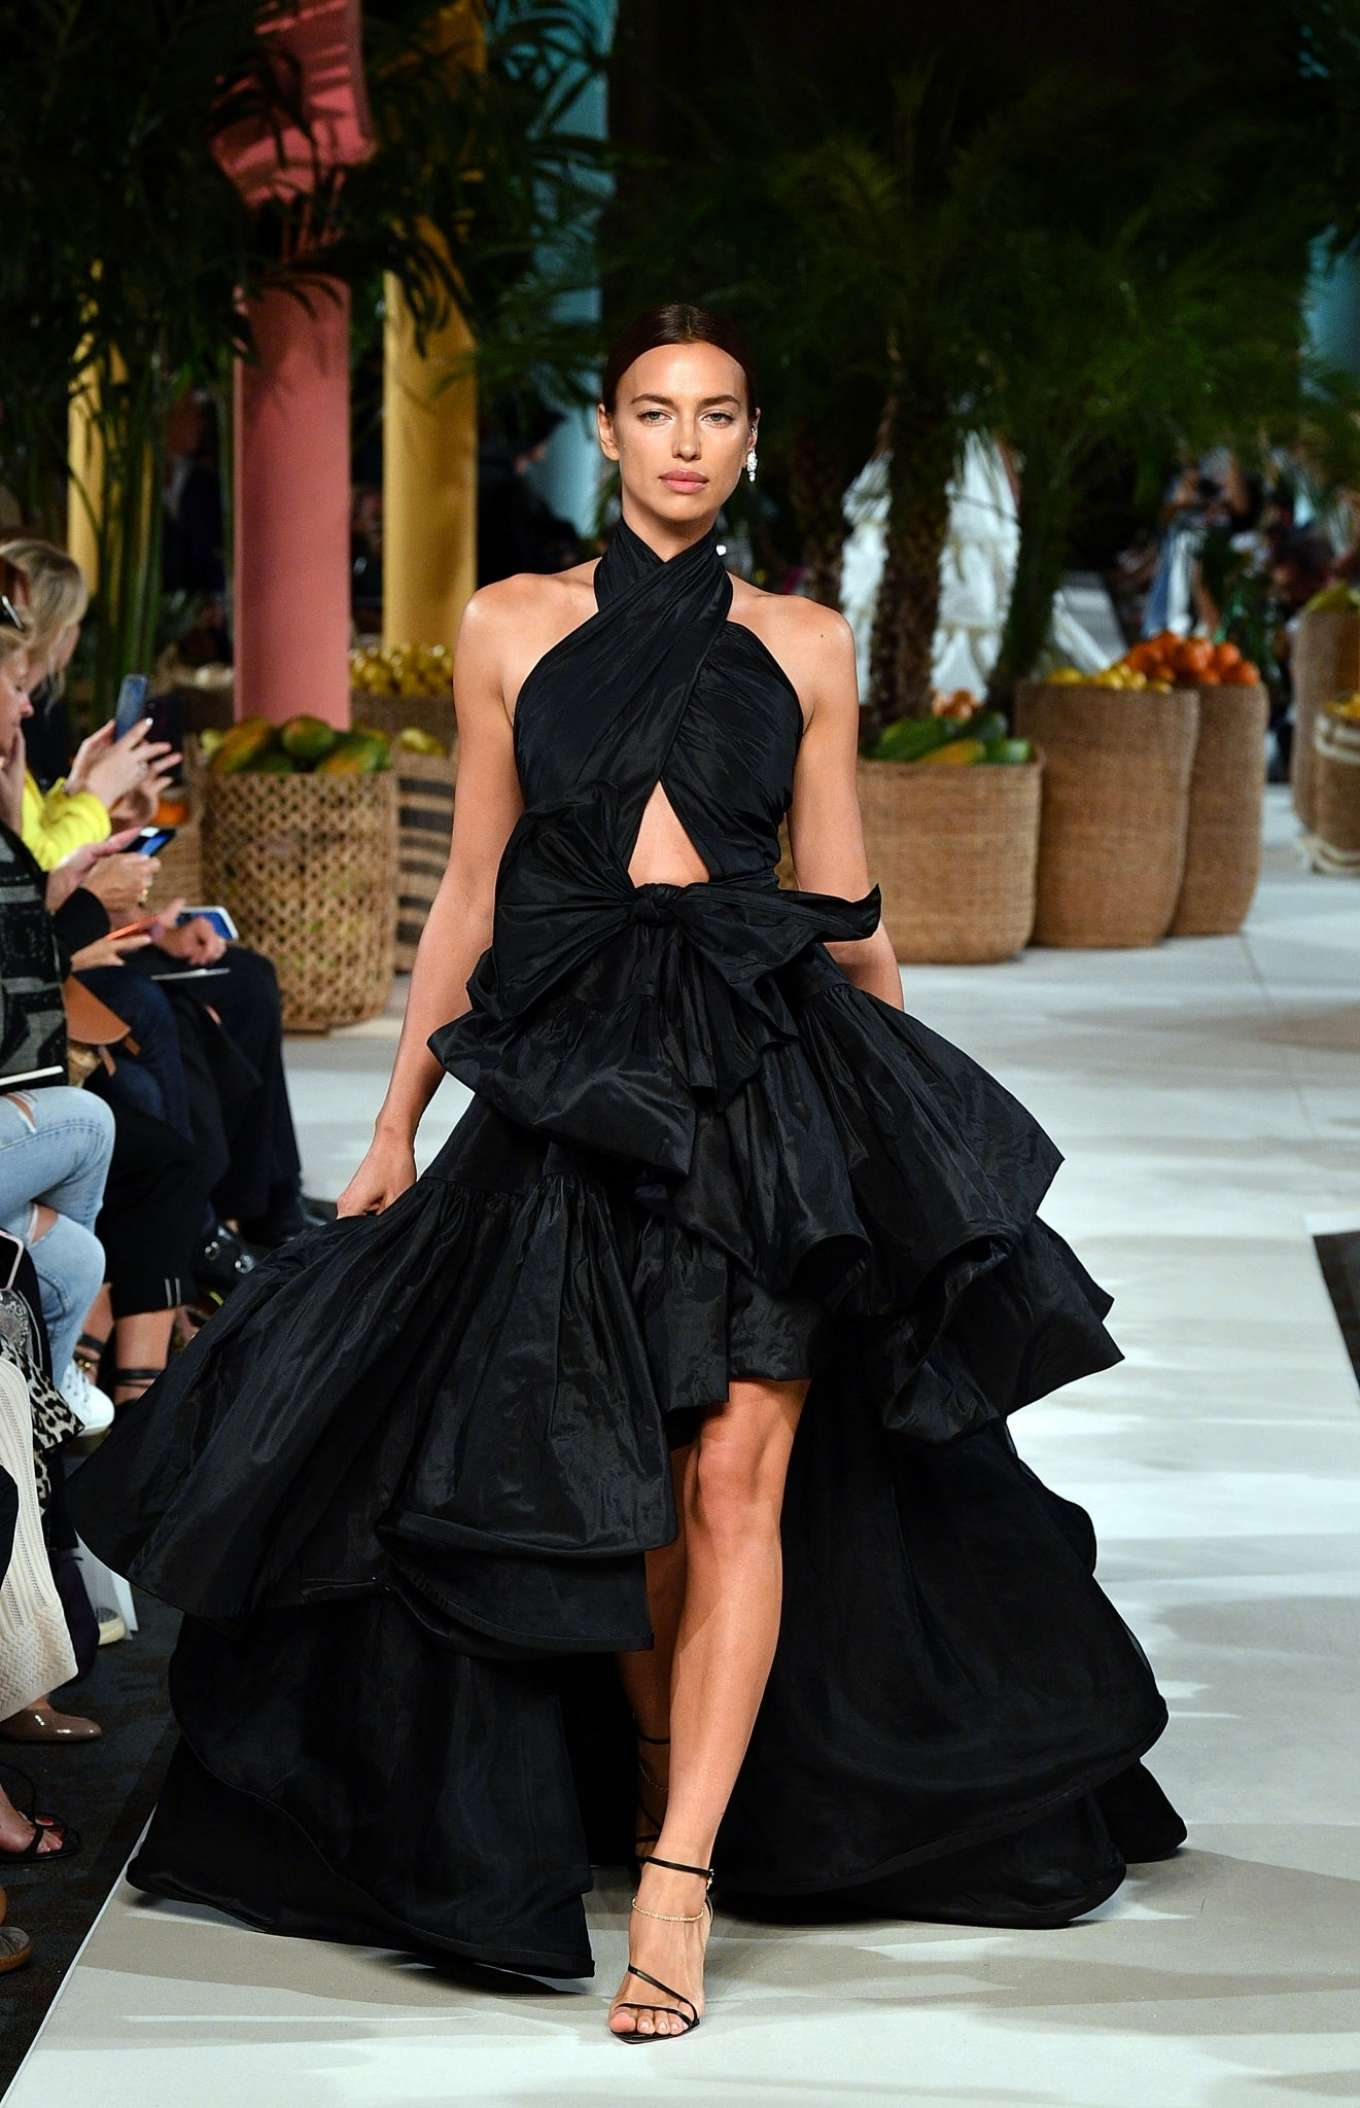 Irina Shayk - Oscar de la Renta Runway Show - New York Fashion Week